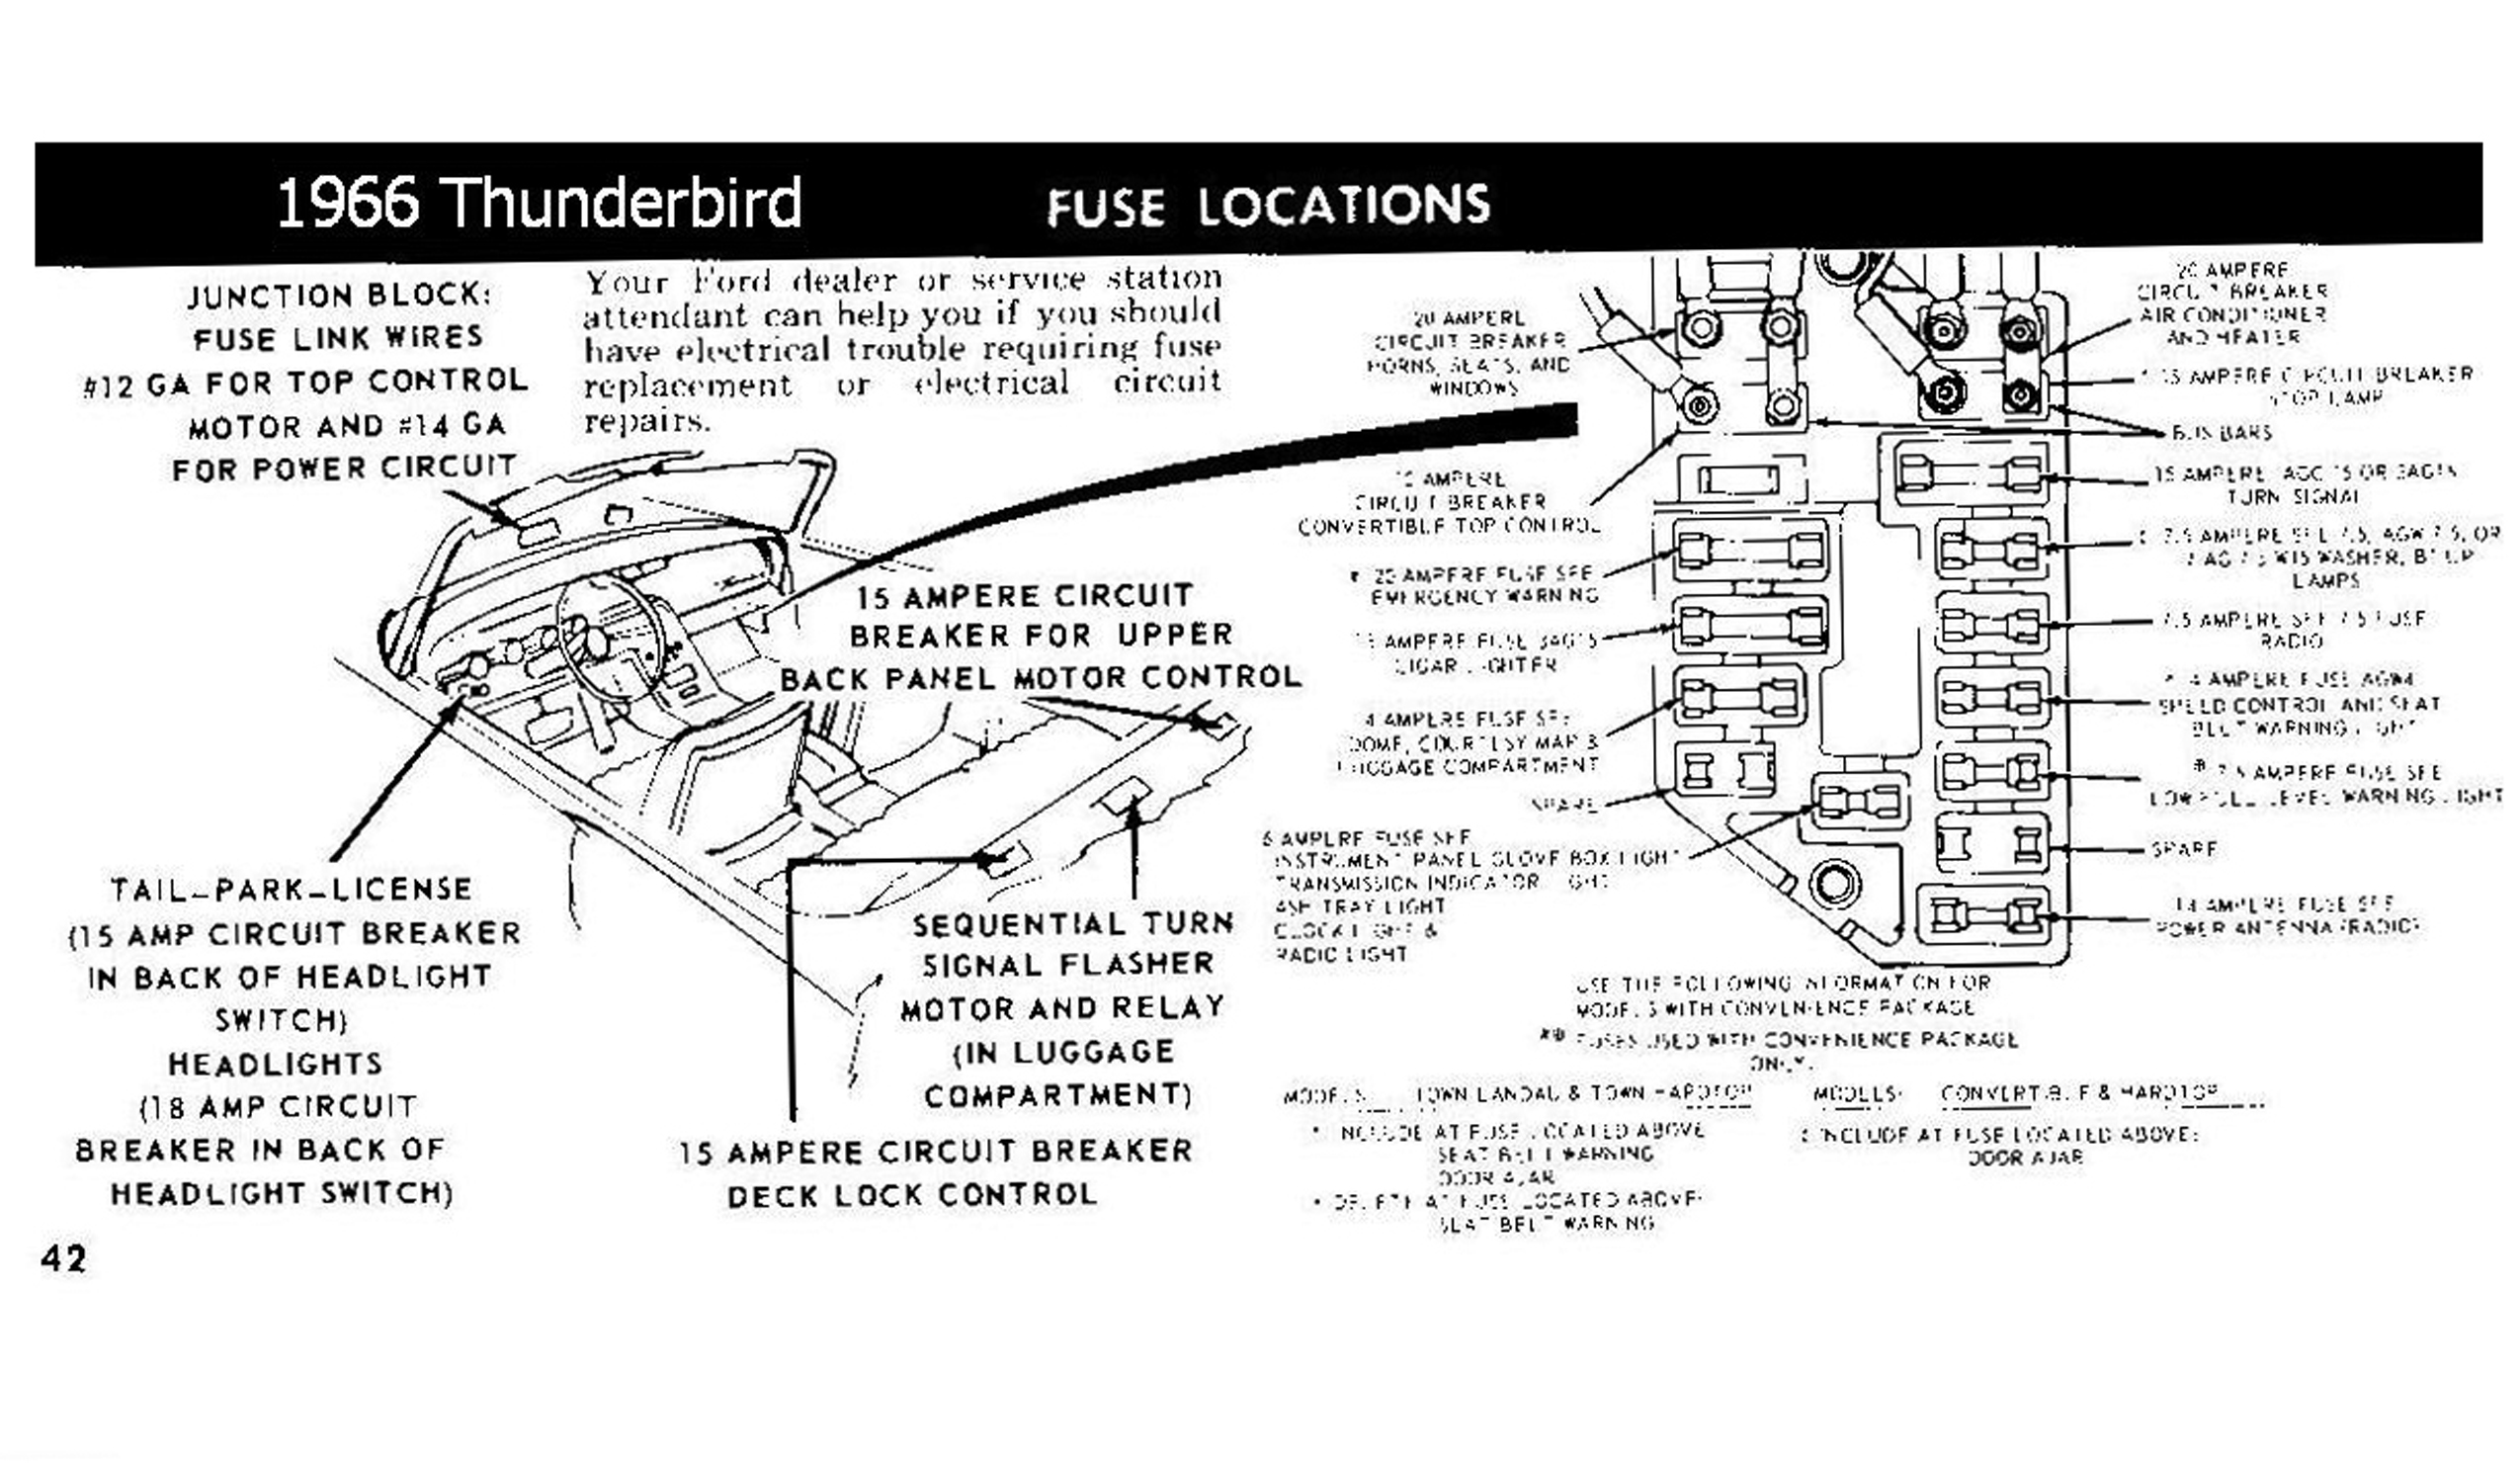 66TbirdFuseLocations 1958 68 ford electrical schematics 1963 ford thunderbird fuse box location at edmiracle.co